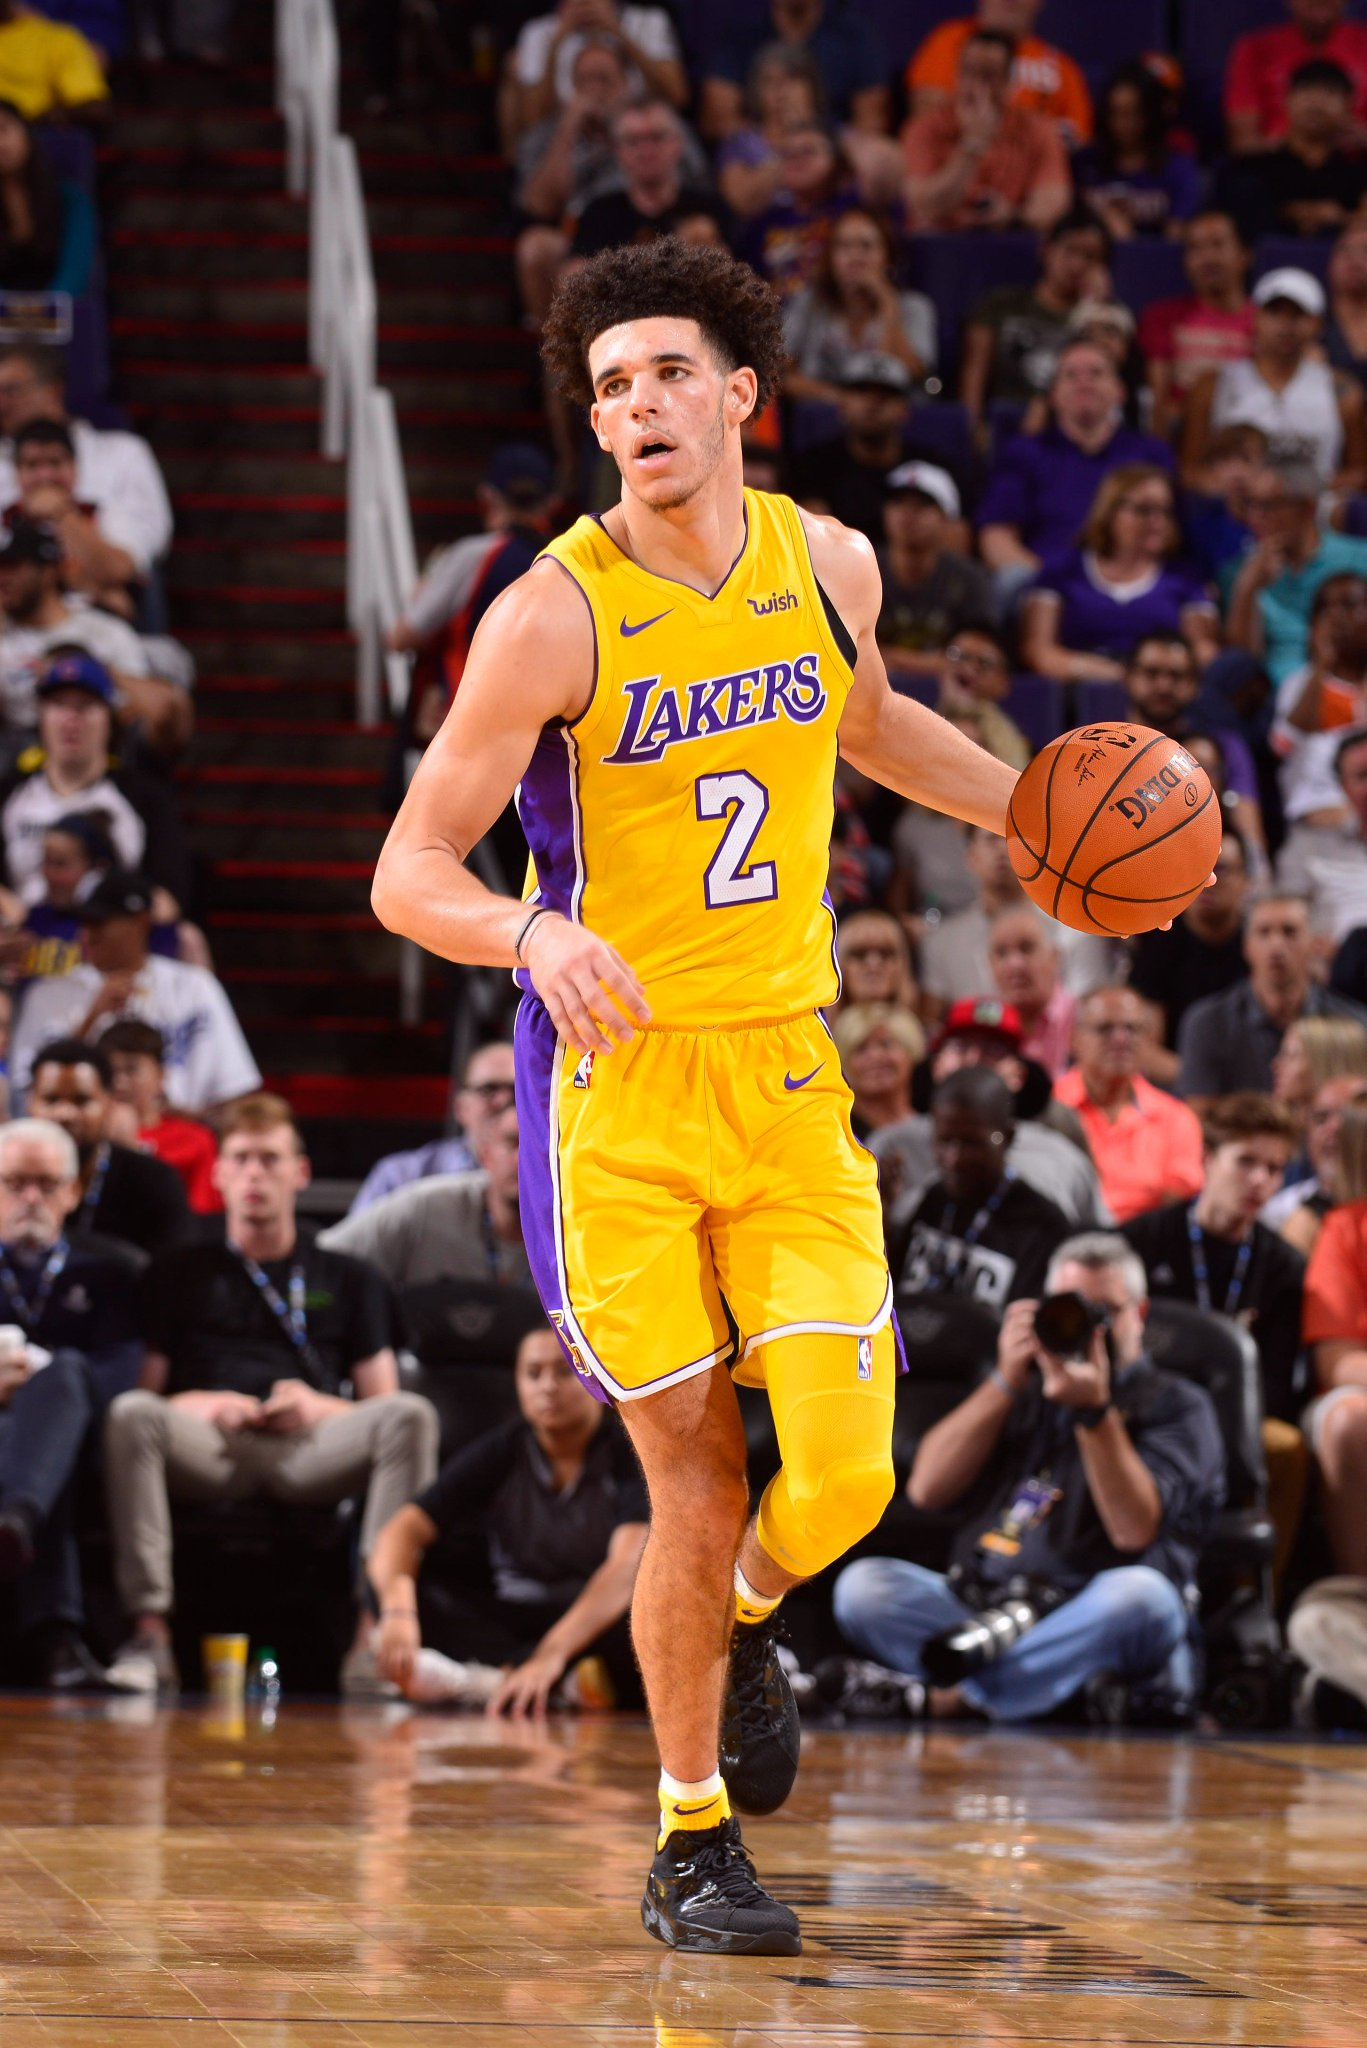 Lonzo Ball's 2nd game as a @NBA player:  29 PTS - 11 REBS - 9 ASTS  #NBARooks https://t.co/NRajinxbsi